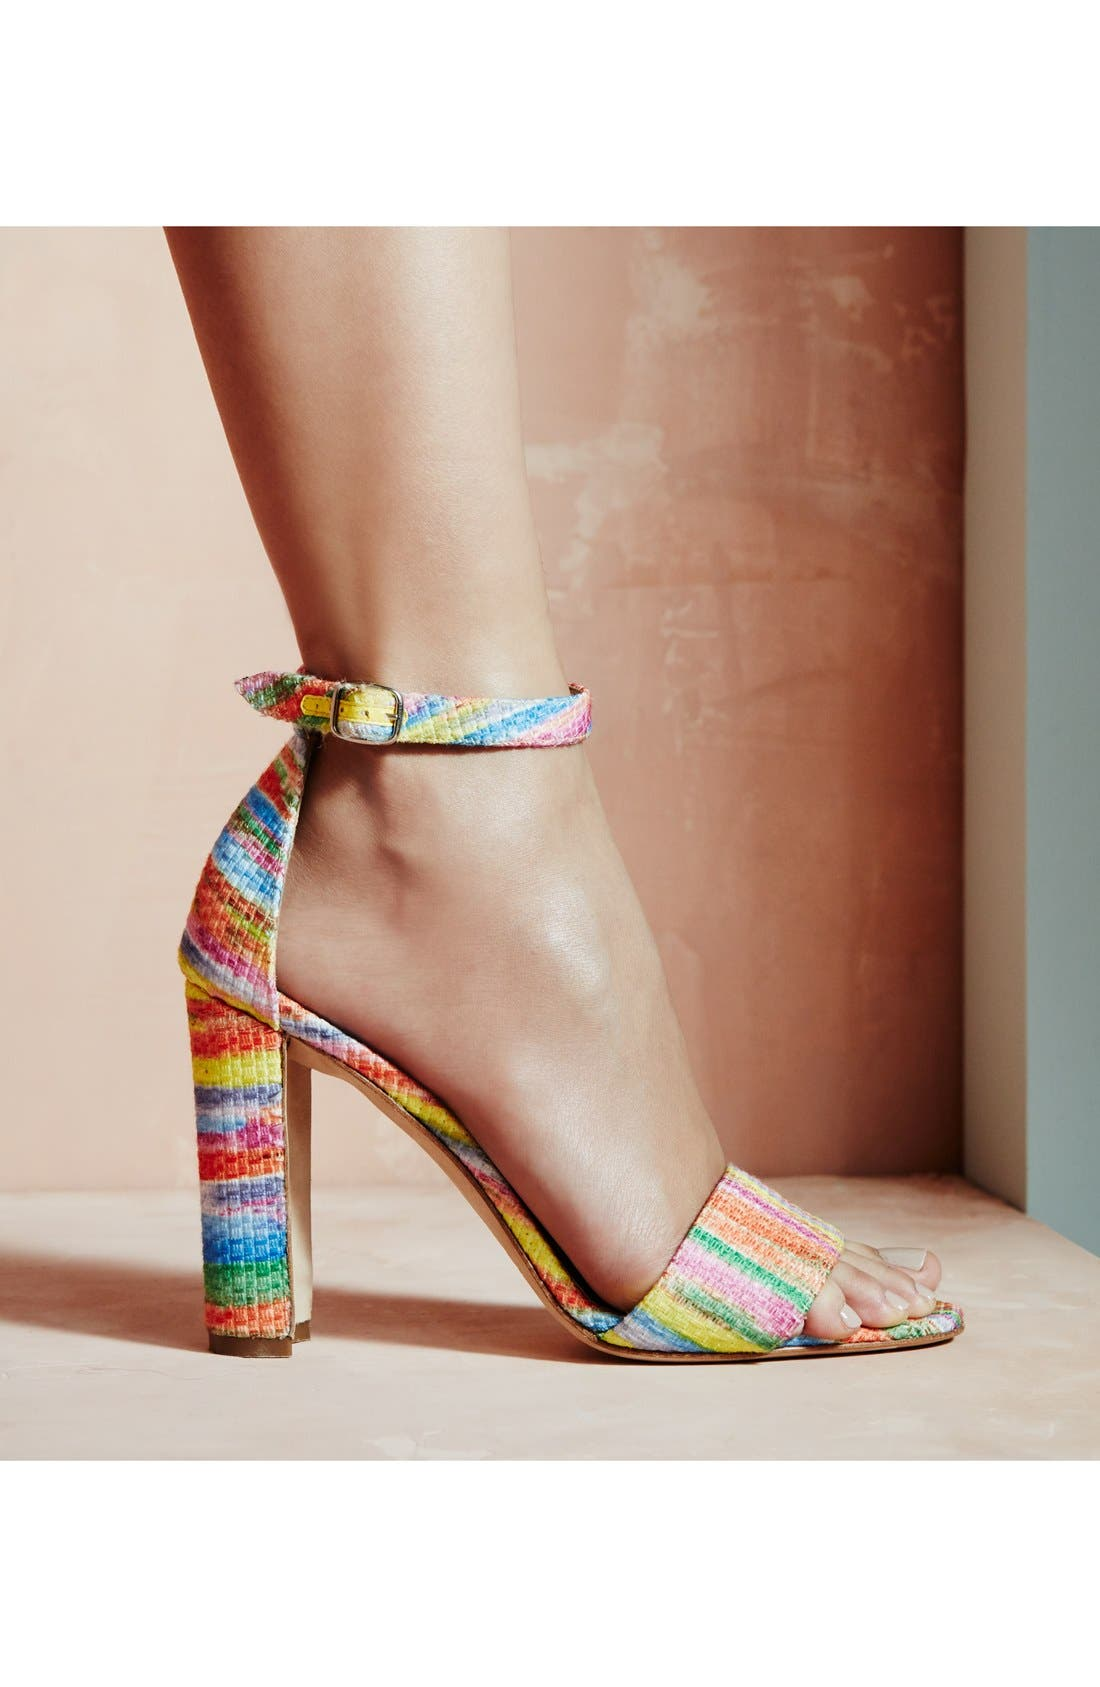 MANOLO BLAHNIK,                             'Lauratopri' Sandal,                             Alternate thumbnail 5, color,                             250